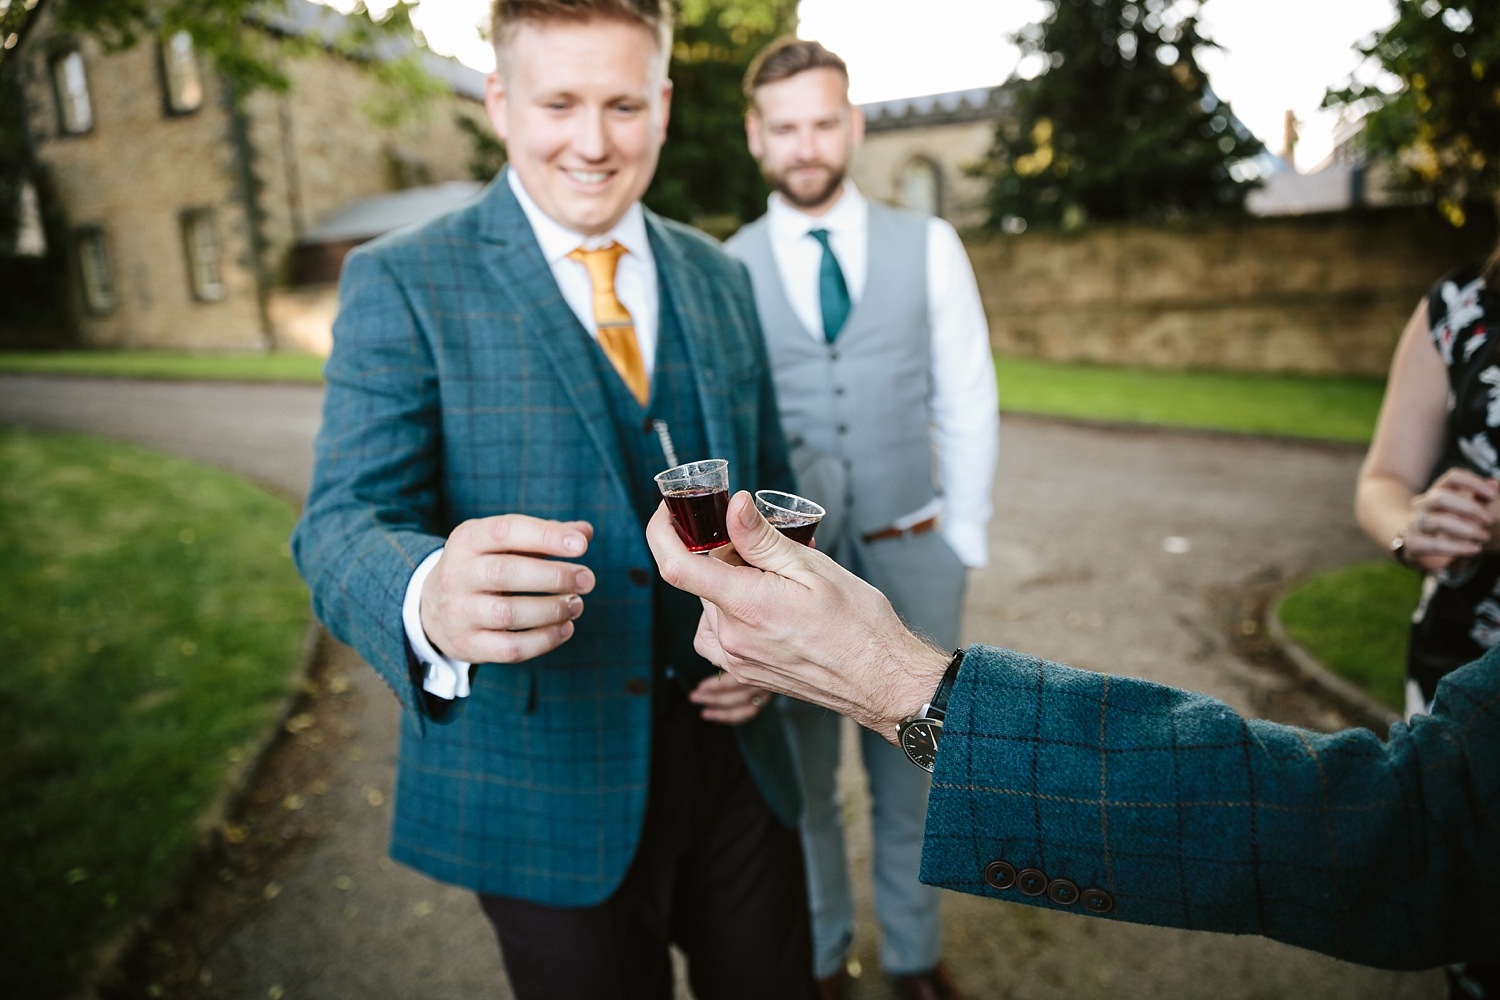 Natlie-Matthew-yorkshire-natural-relaxed-fun-documentary-reportage-candid-wedding-photography-photographer-Derby-Nottingham-Derbyshire-Nottinghamshire-Leicestershire-Lincolnshire-East-Midlands-82.jpg